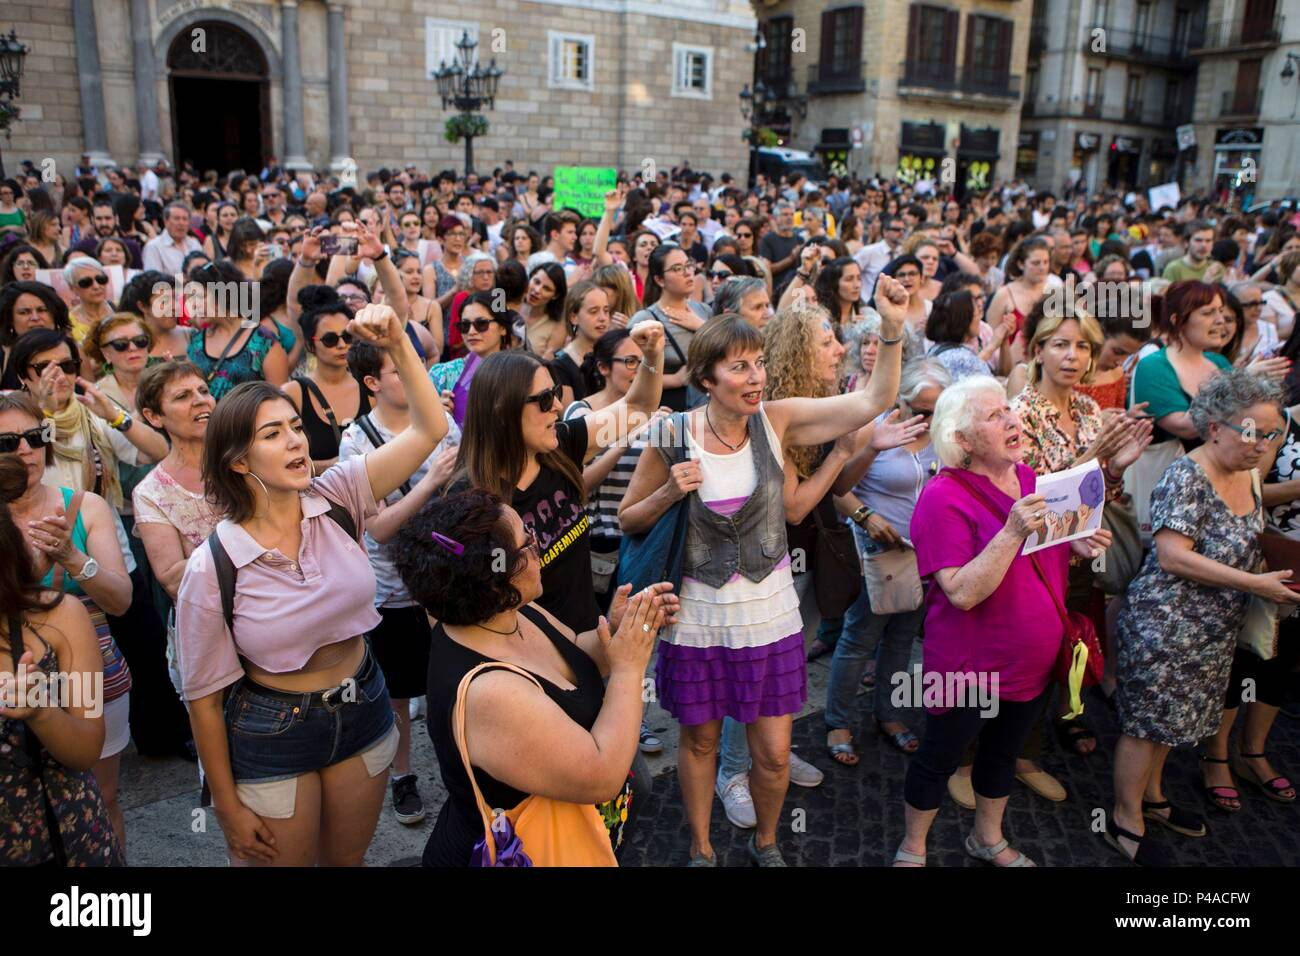 Barcelona Spain 21st June 2018 Hundreds Of People Attend A Protest Against The Judicial Decision To Grant The Release On Bail To The Five Men Accused Of Gang Raping A Woman Back